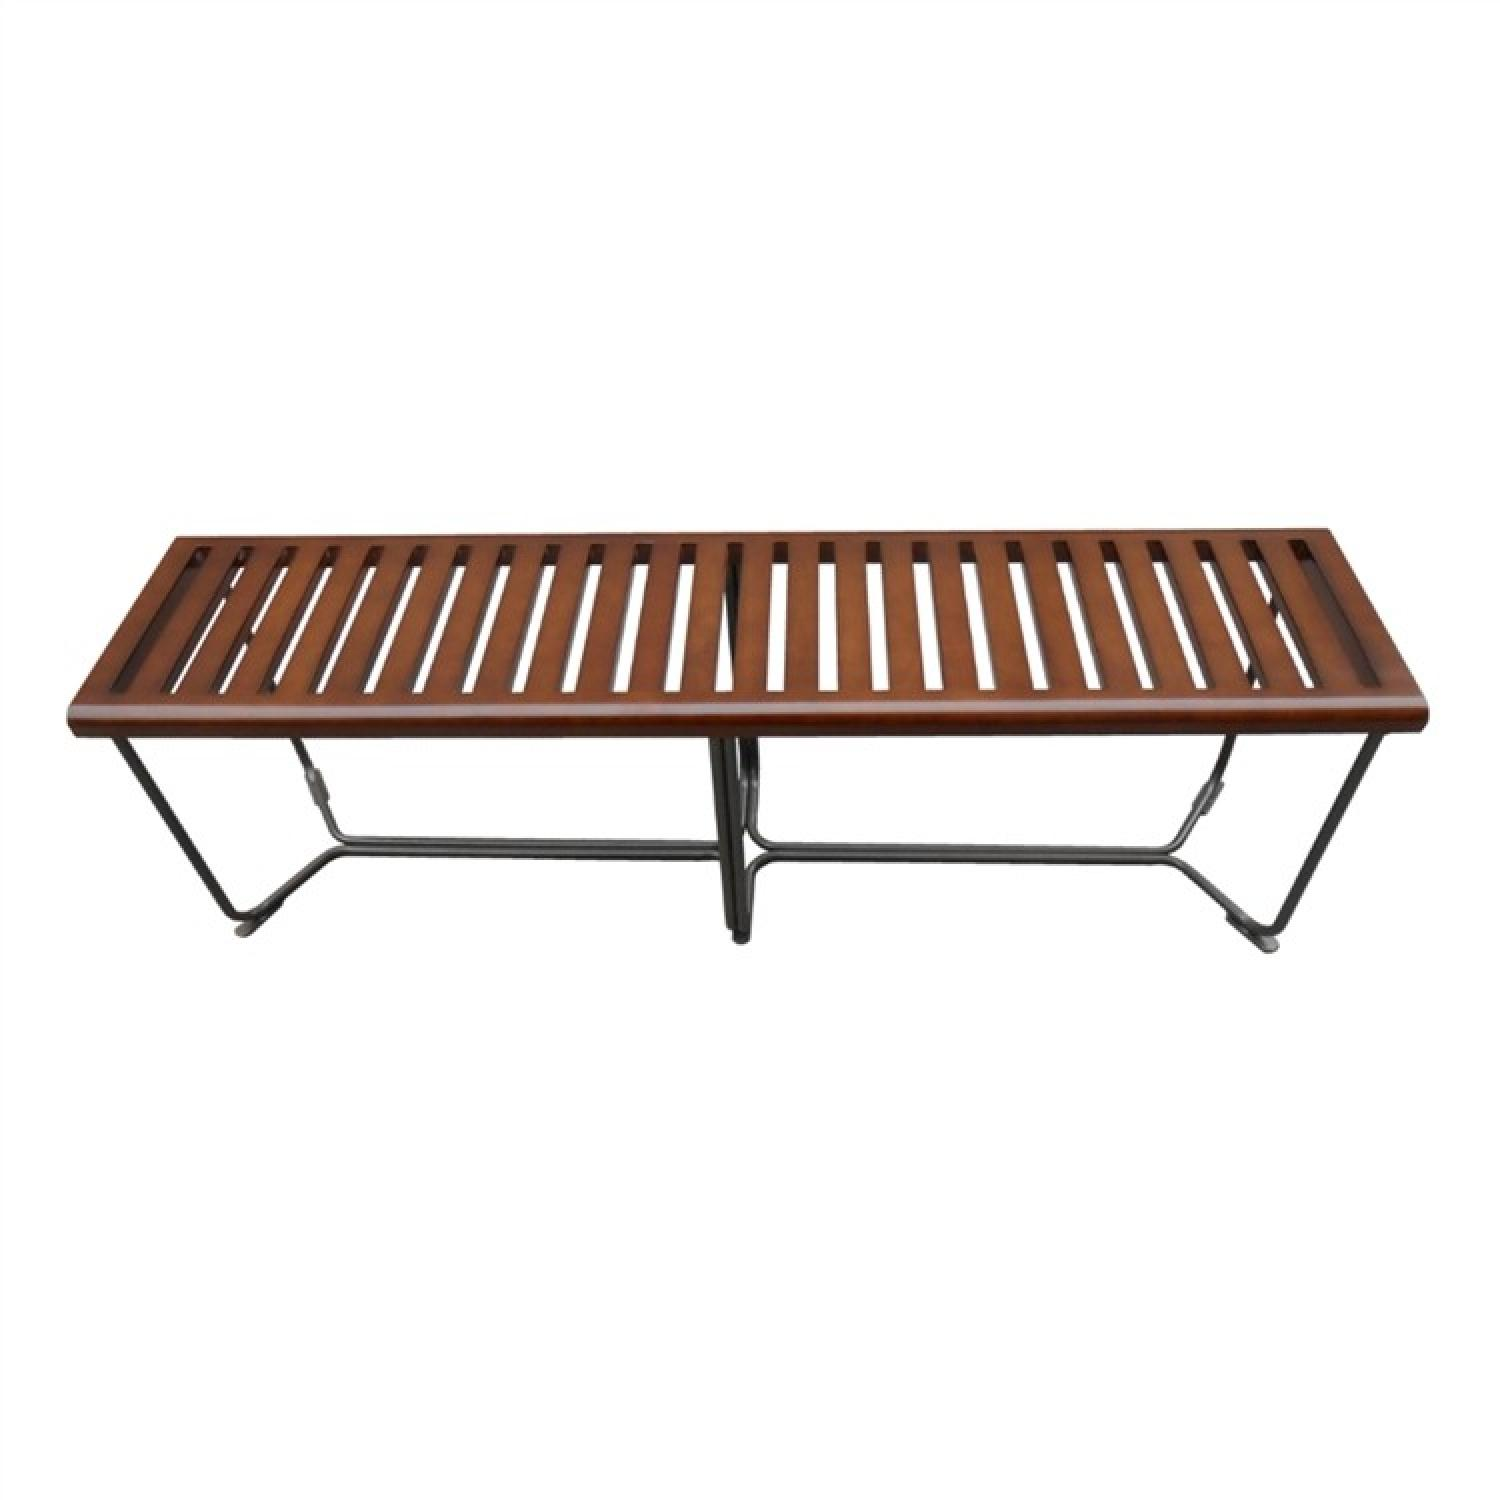 Solid Wood Modern Bench w/ Steel Base